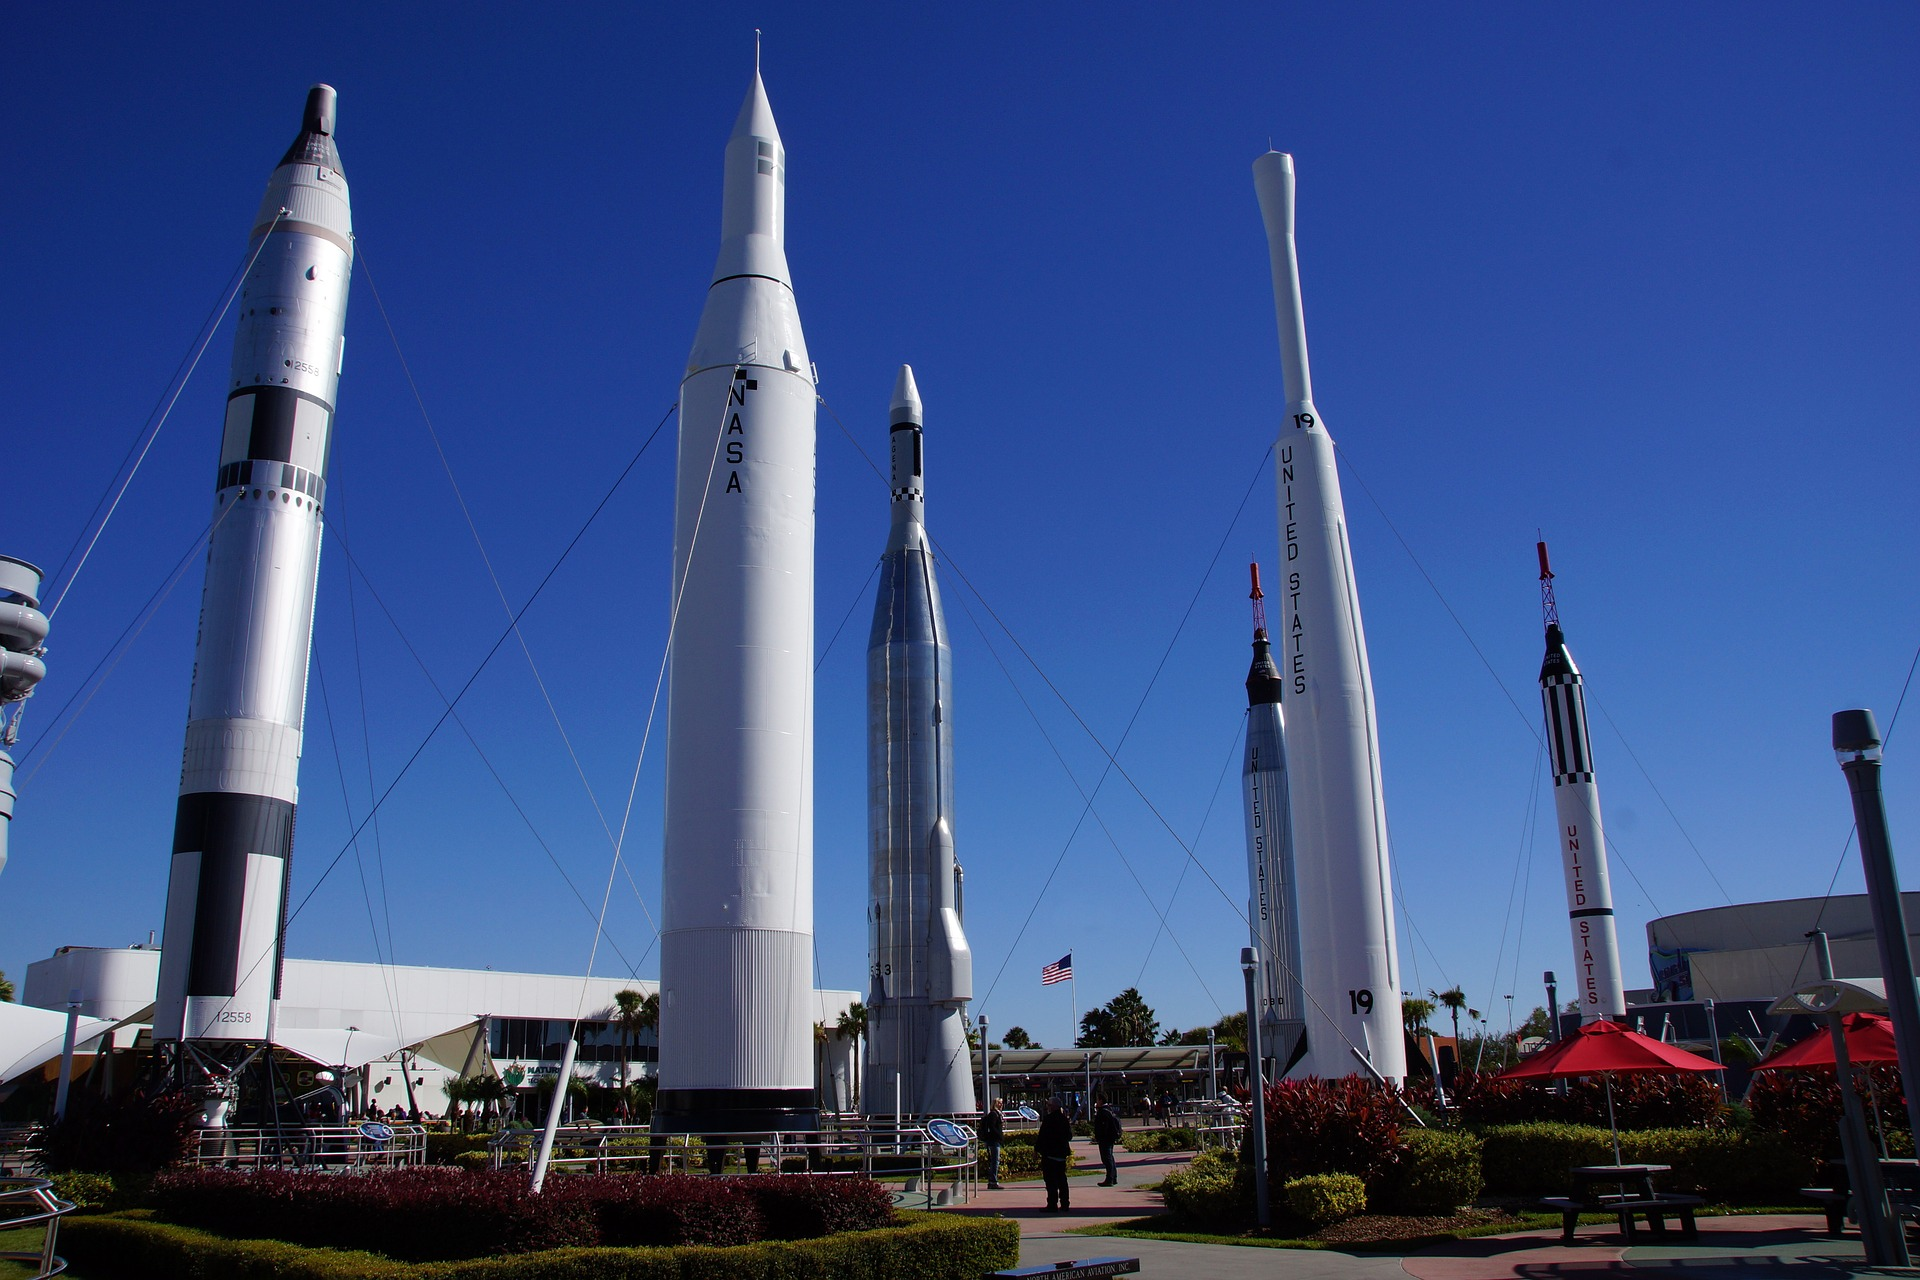 Foguetes no Kennedy Space Center